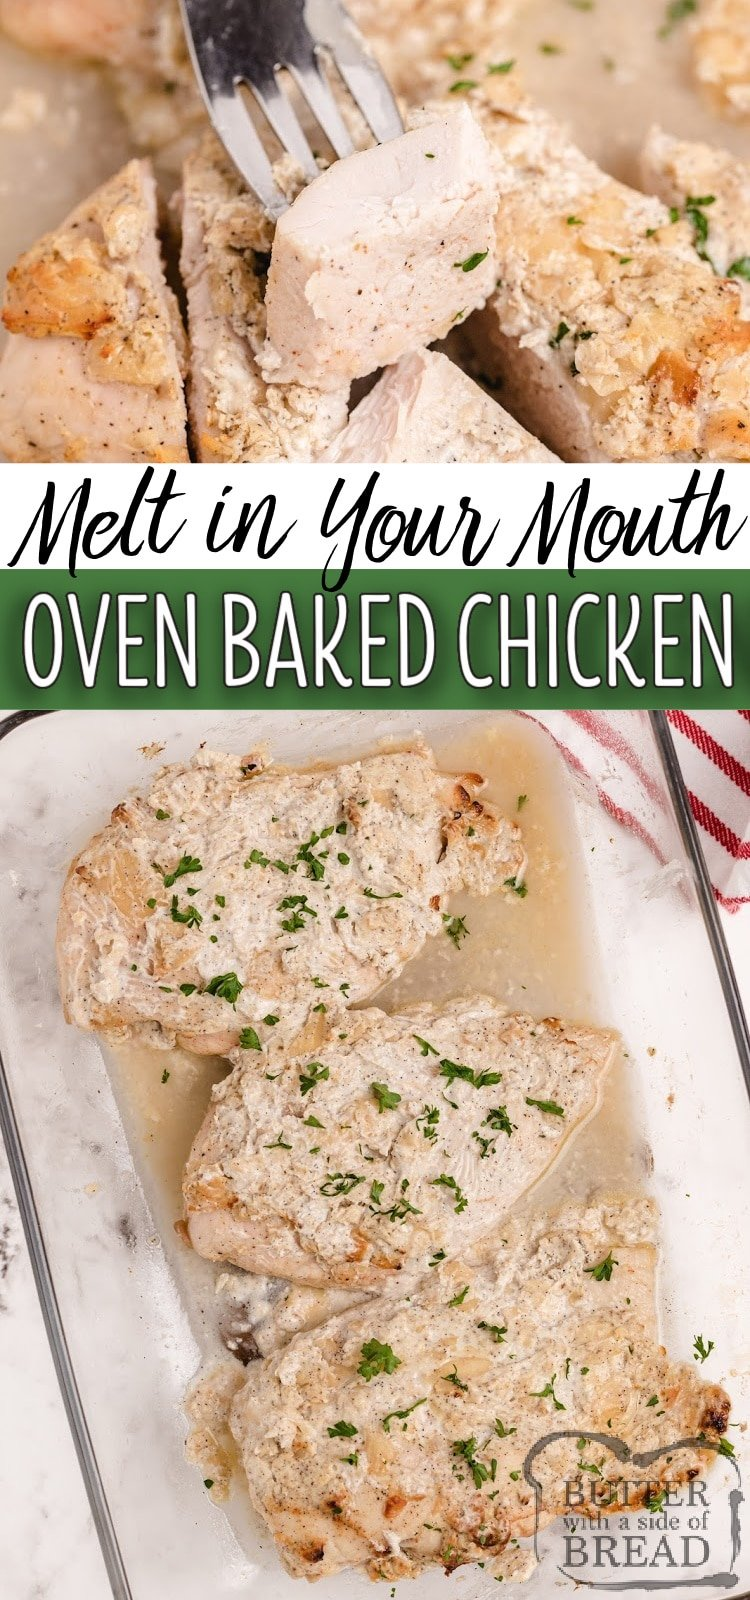 Oven Baked Chicken Breasts coated in Greek yogurt, Parmesan cheese and seasonings for a delicious baked chicken breast recipethat everyone loves! This chicken is juicy, flavorful, healthy and high in protein.